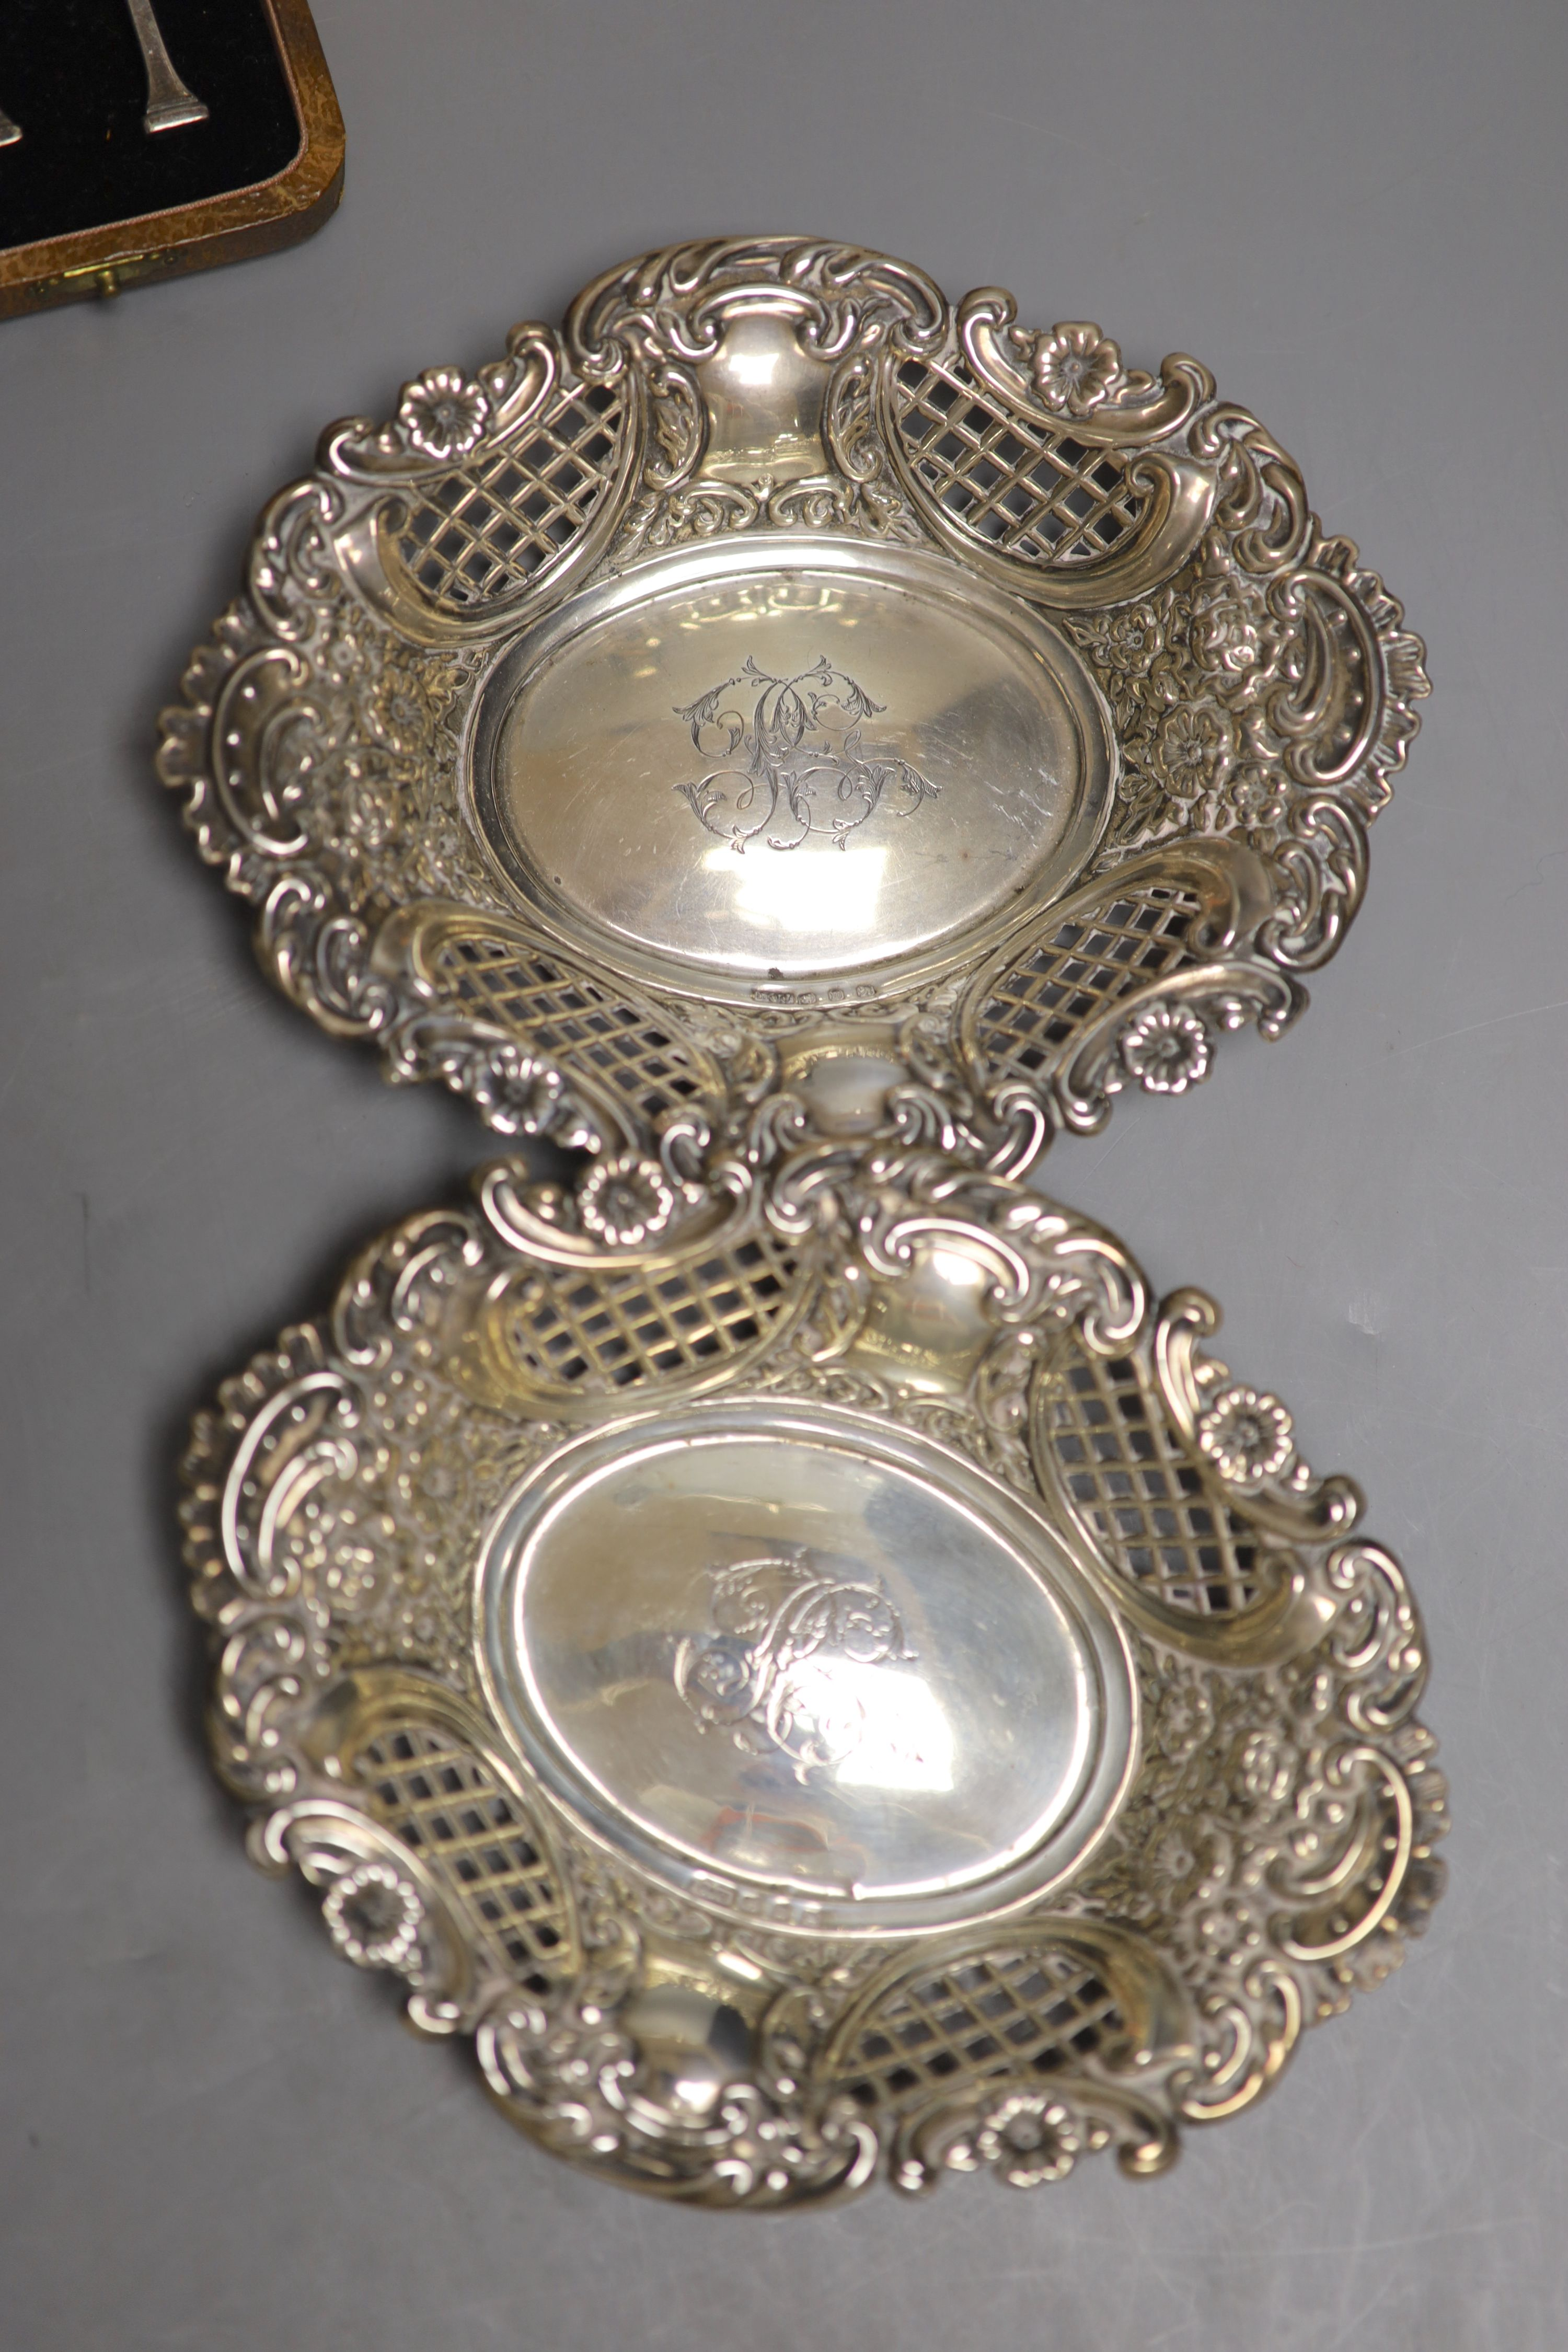 An Edwardian silver sugar caster, London, 1907, 17.6cm, a pair of late Victorian repousse silver - Image 2 of 4